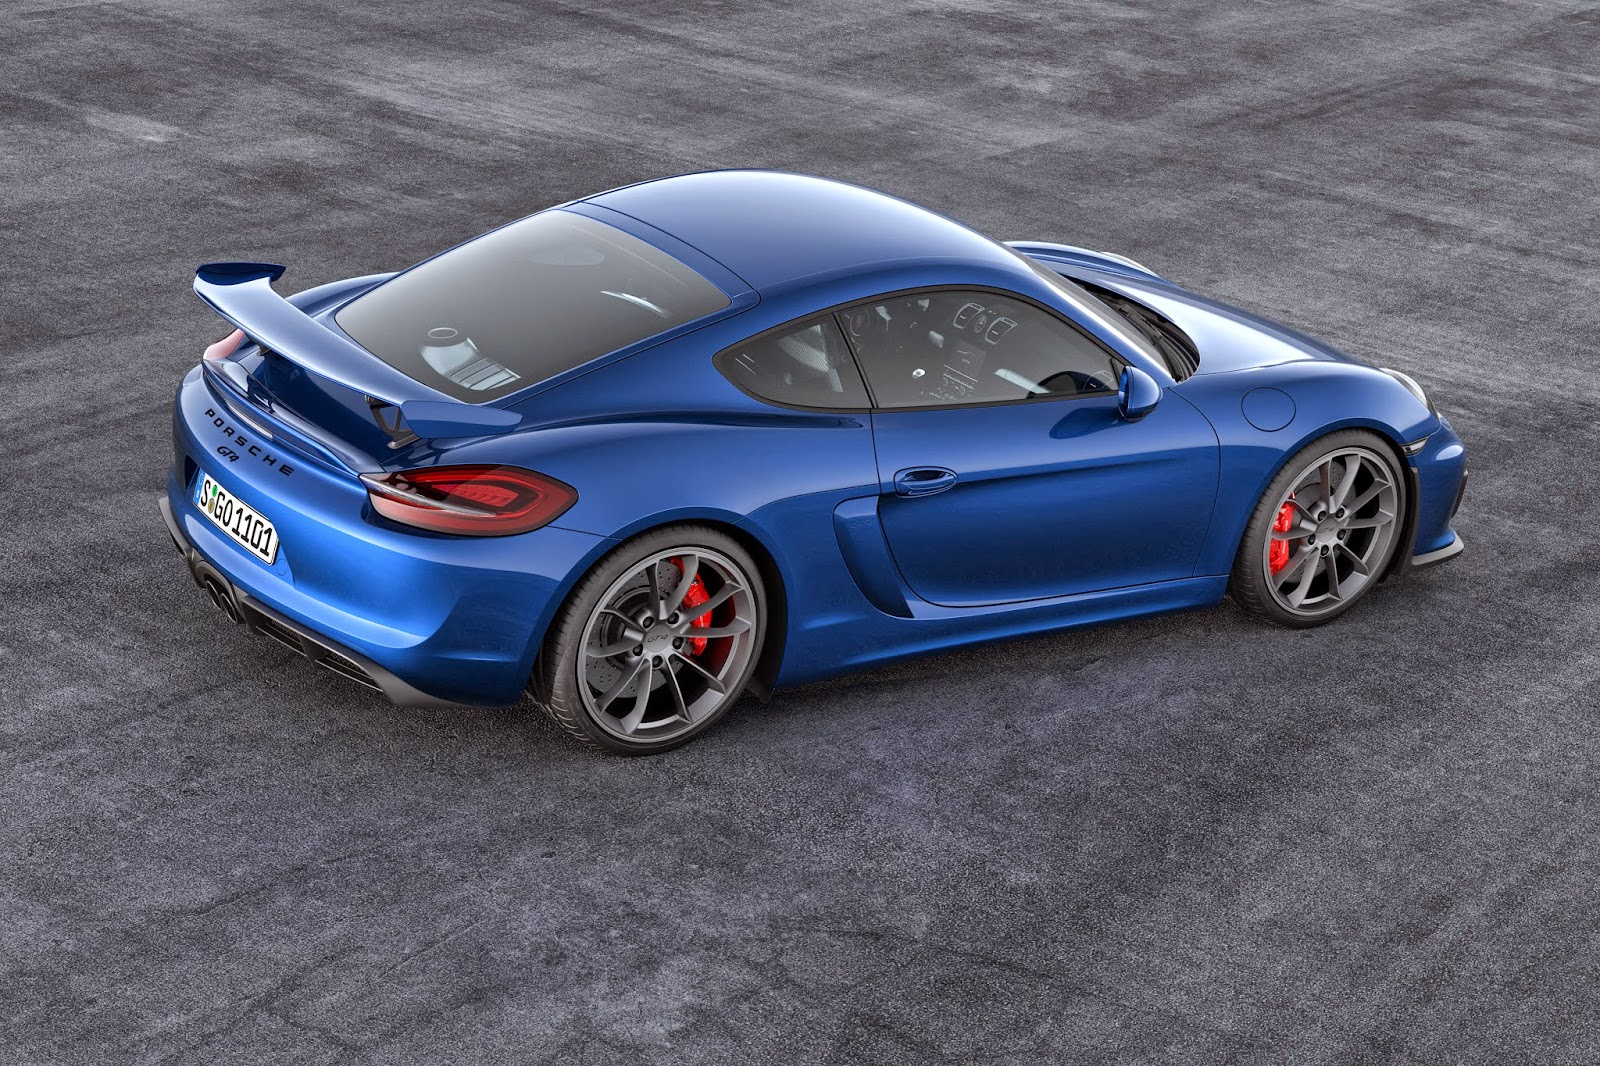 Cayman Gt4 2019 >> New Porsche Cayman GT4 Vs. Used '997' 911 GT3 [w/Poll] | Carscoops